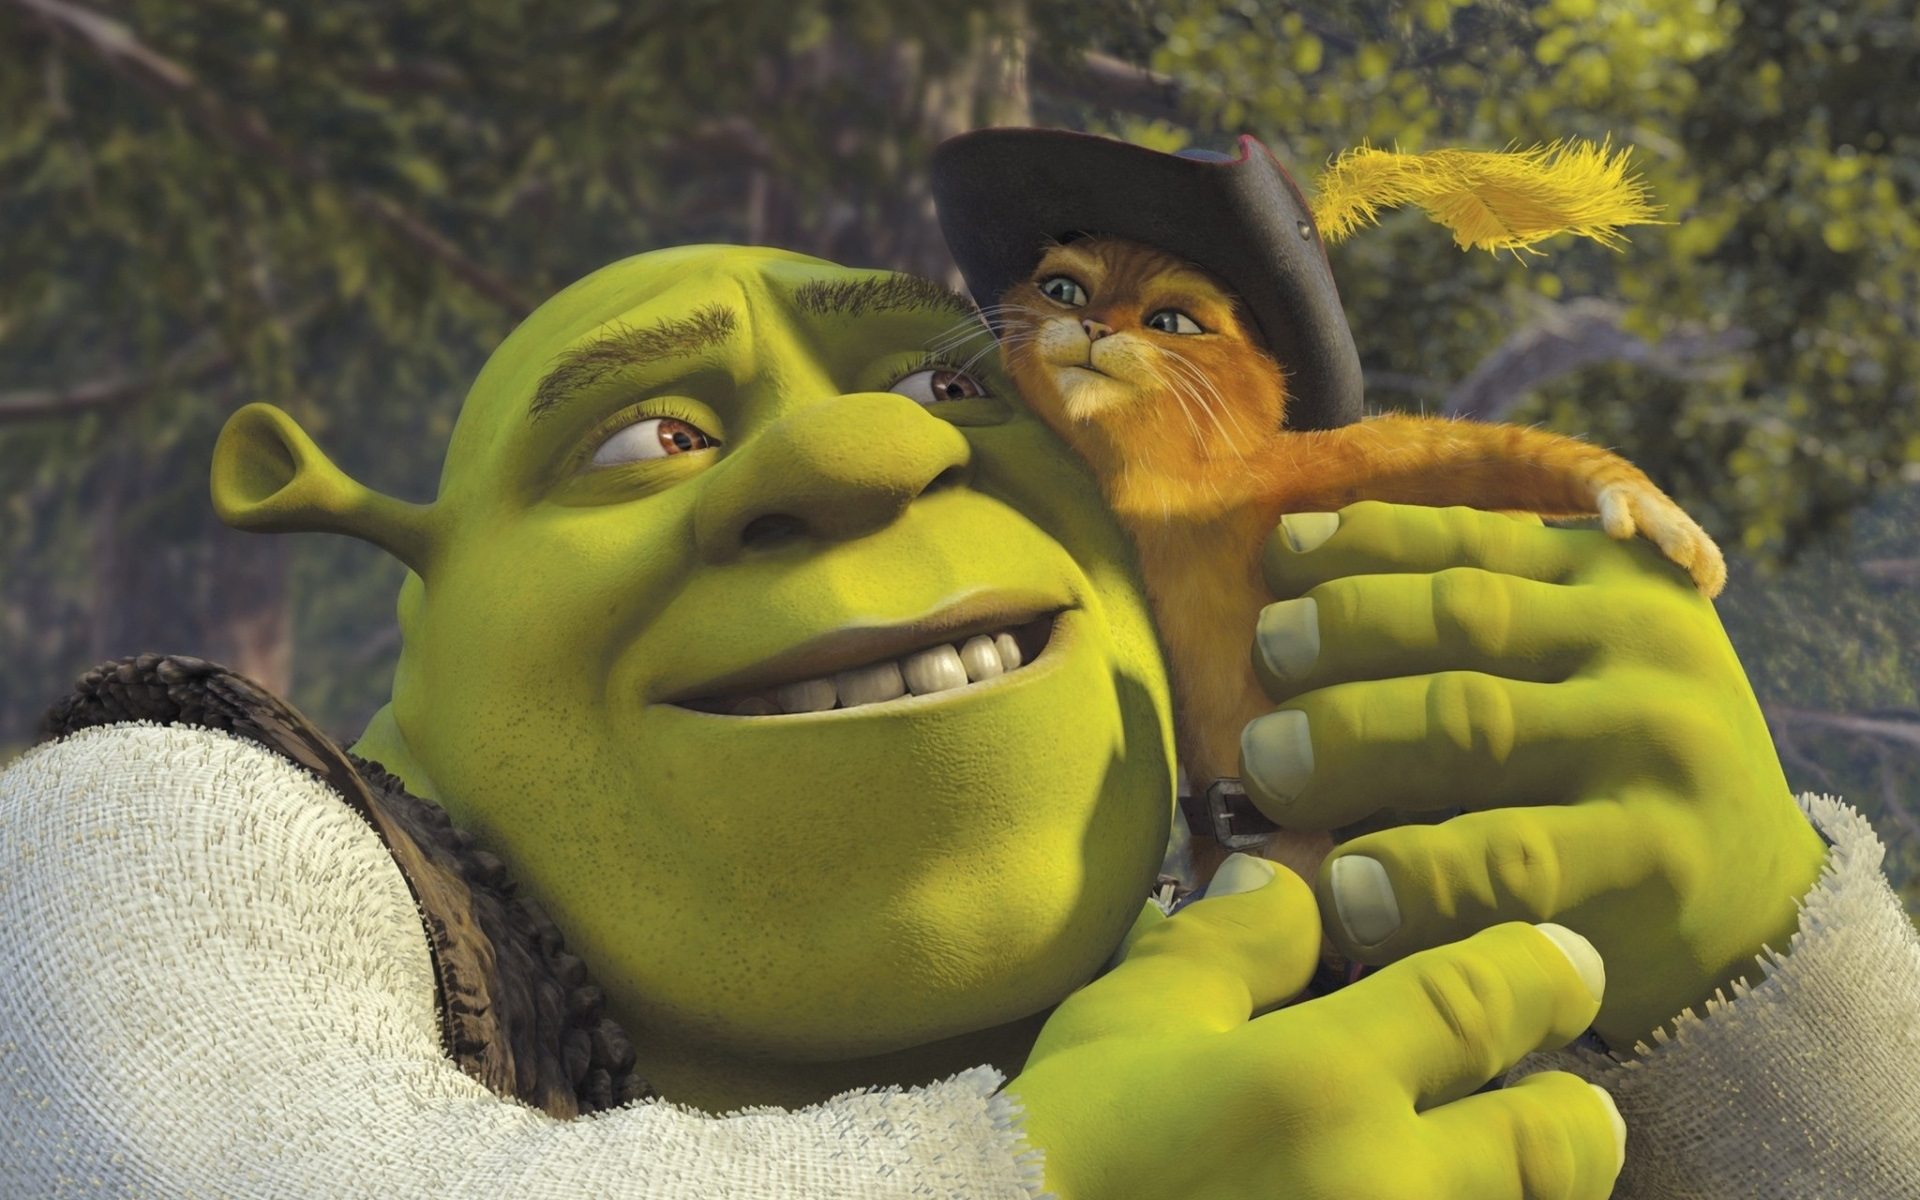 Sherk sex pictures erotic film